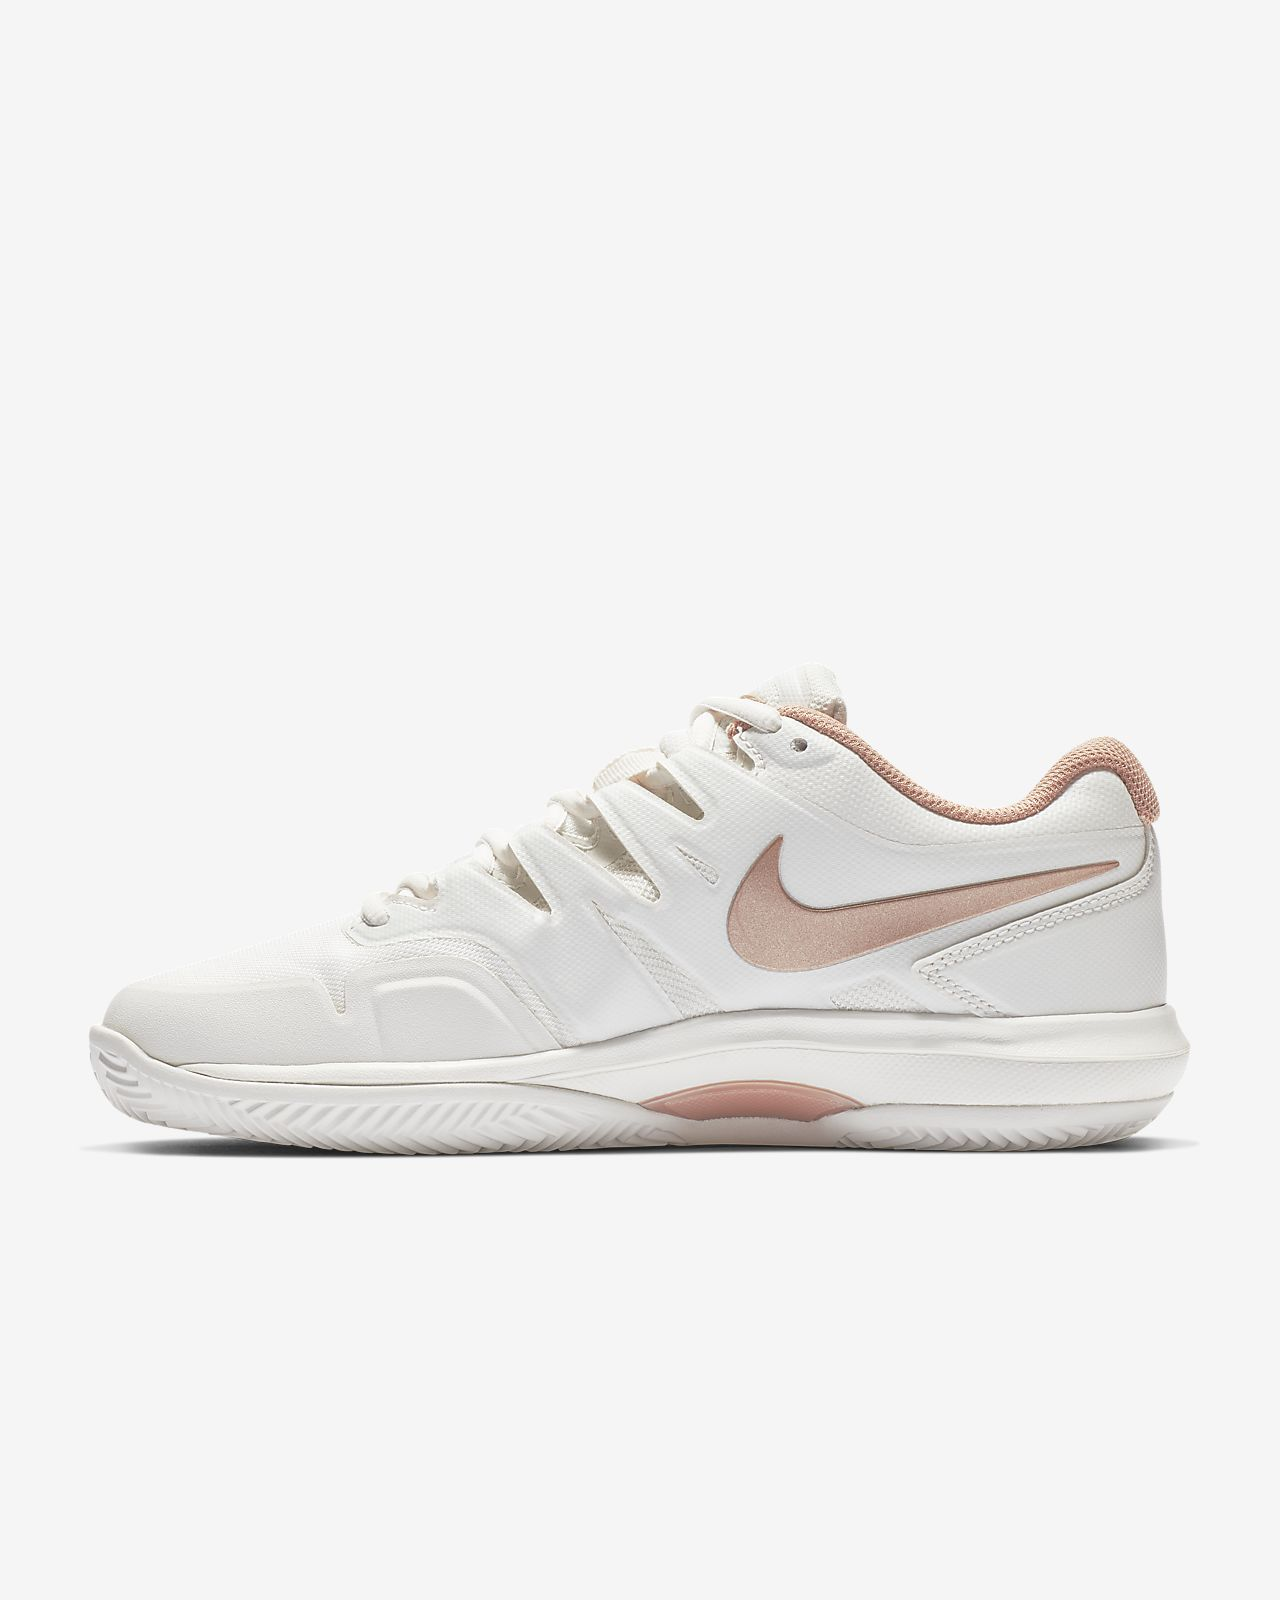 various colors 6cbeb 03298 ... Chaussure de tennis Nike Air Zoom Prestige Clay pour Femme